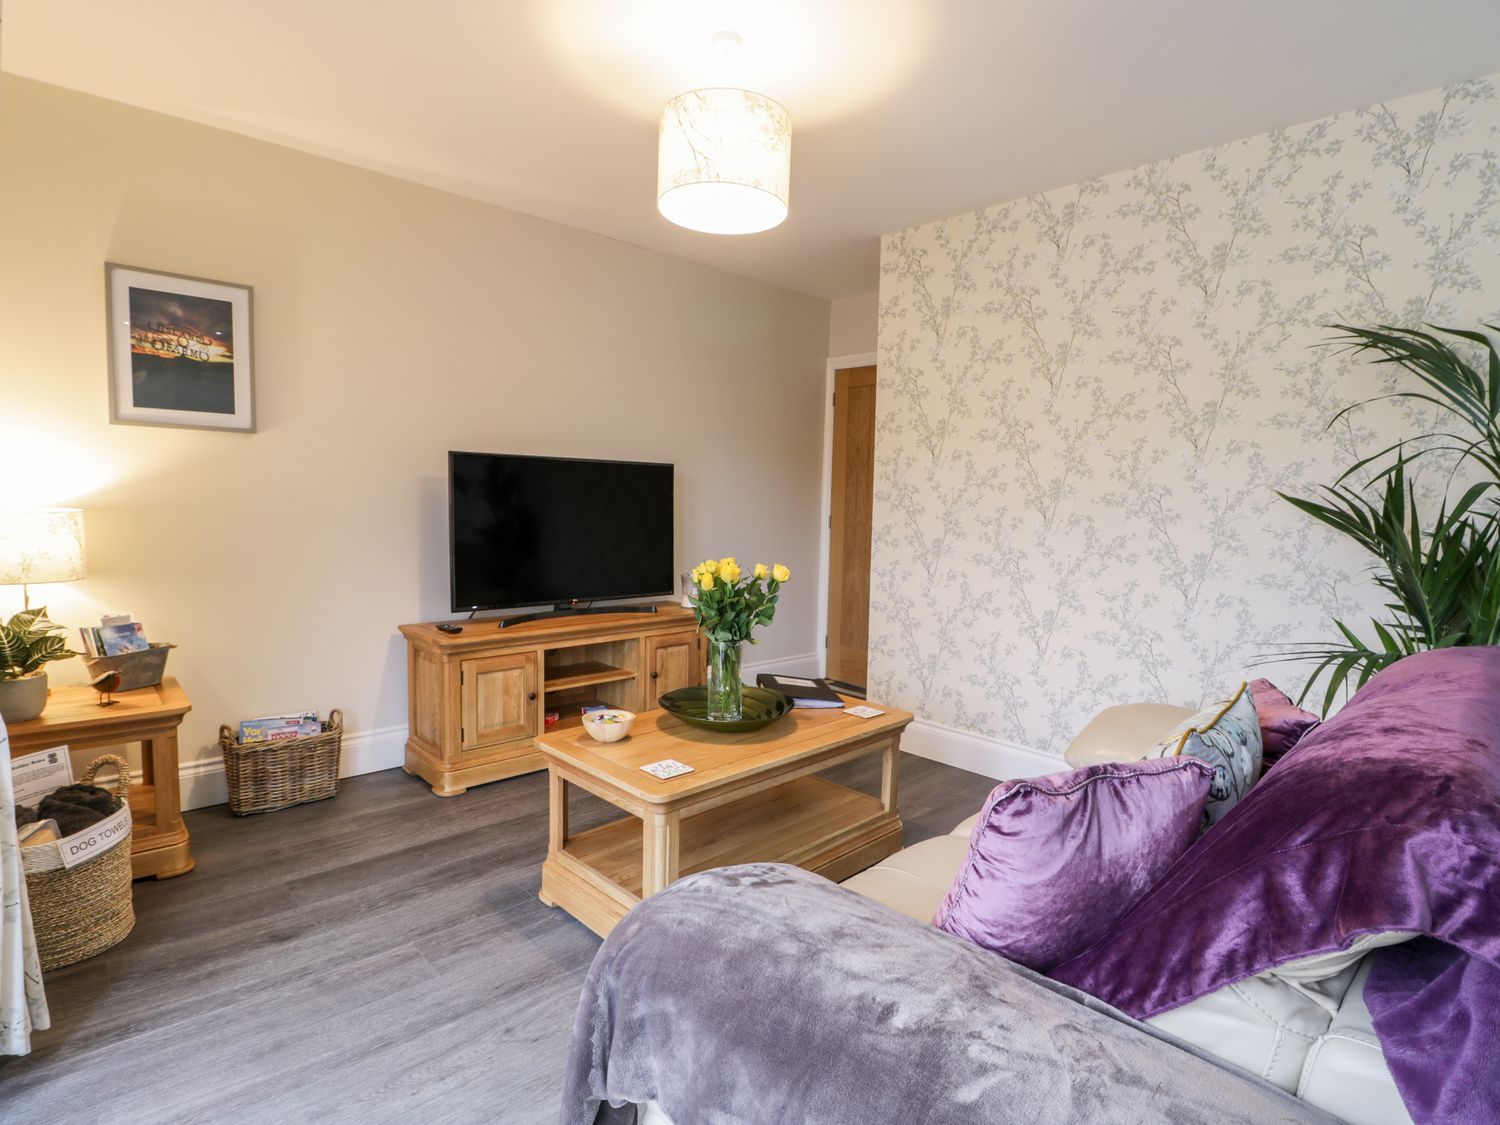 Orchard Cottage in Staintondale - sleeps 2 people